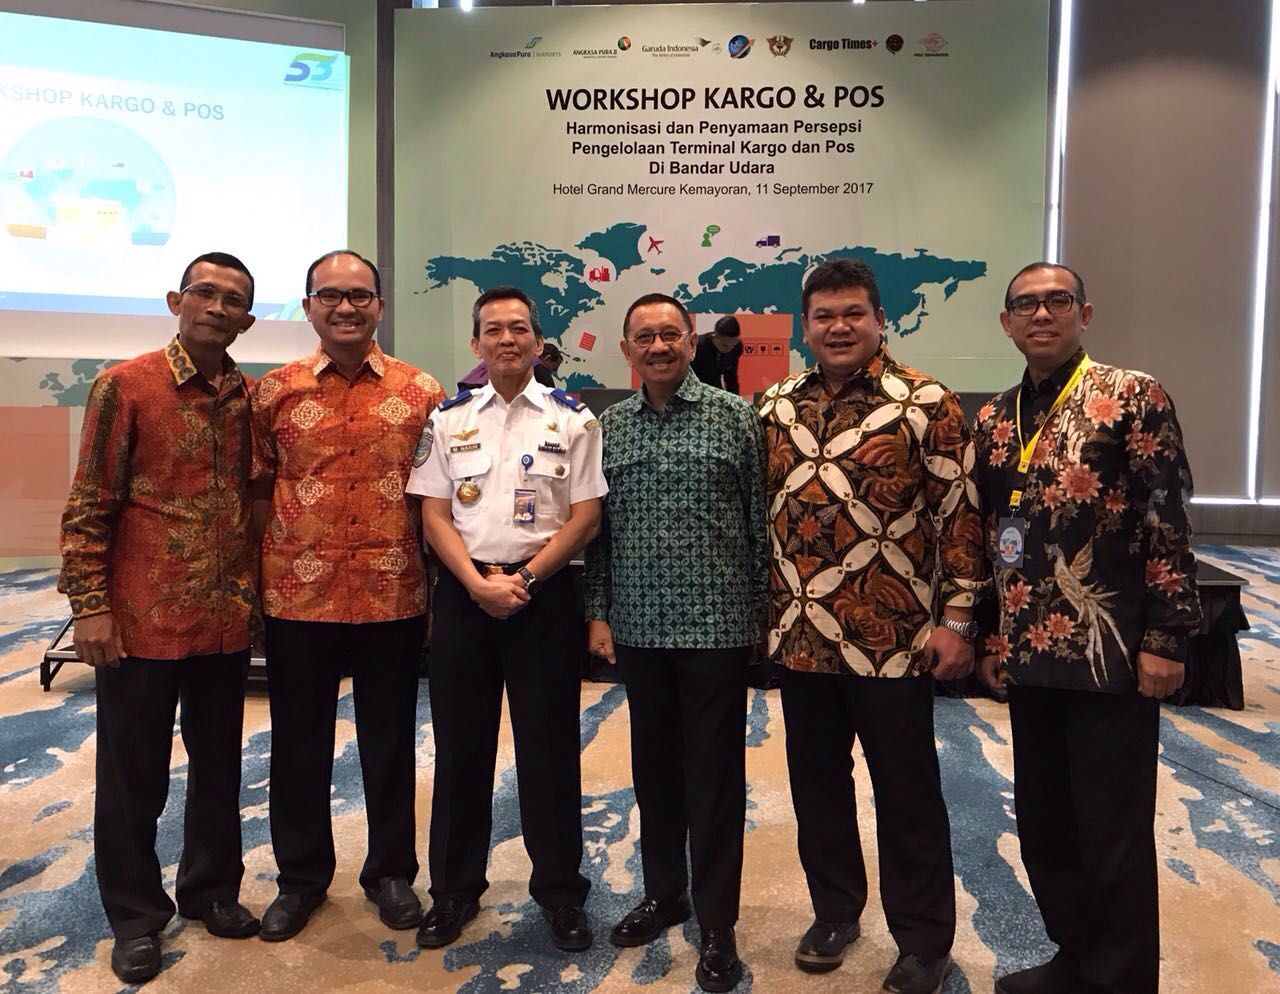 Workshop Kargo & Pos, 11 Sept 2017